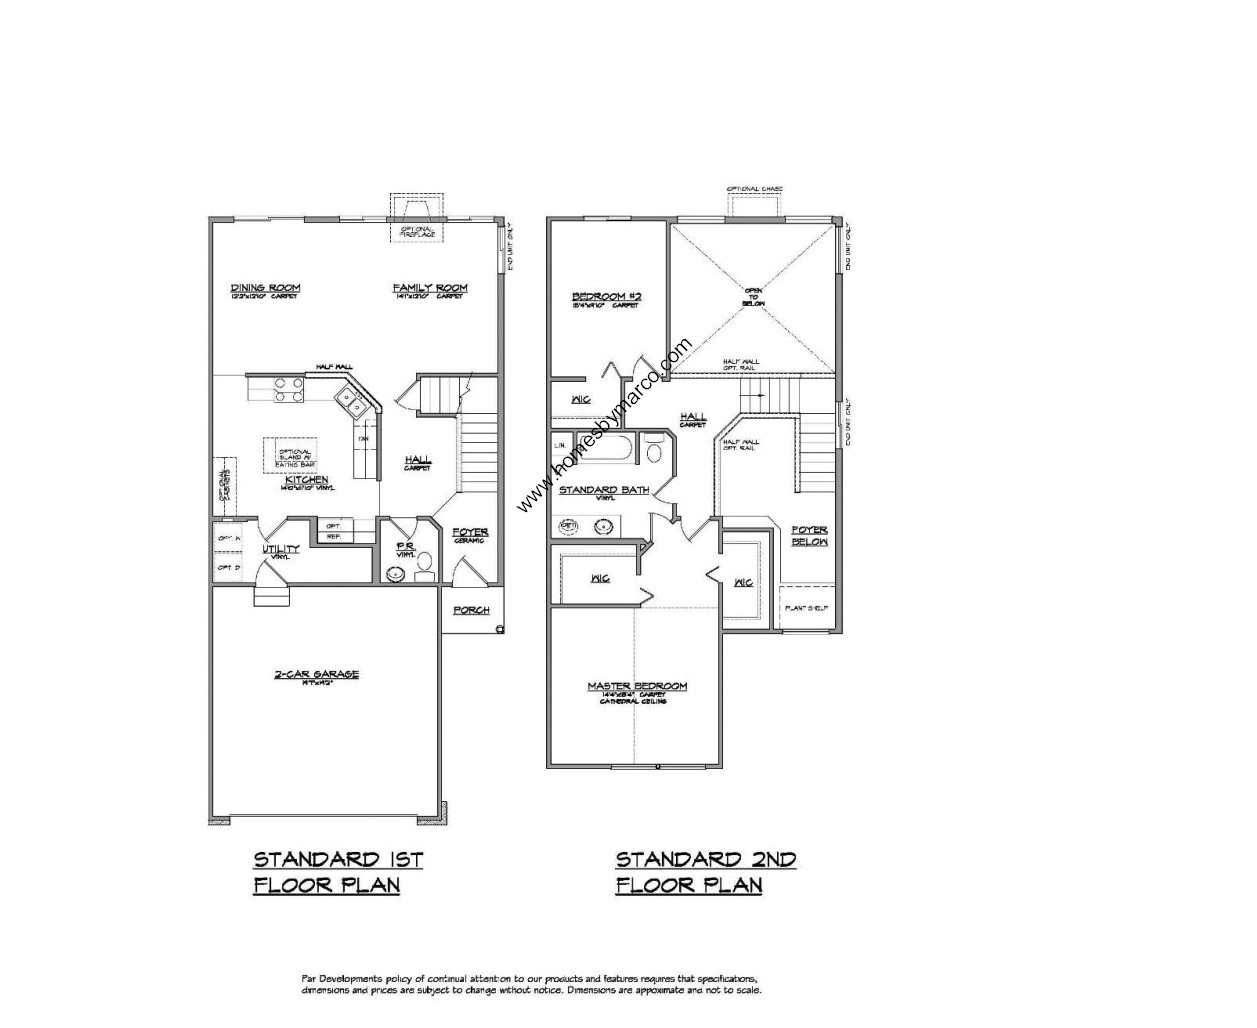 Homes By Marco Floor Plans: Carrington Model In The West Lake Subdivision In Cary